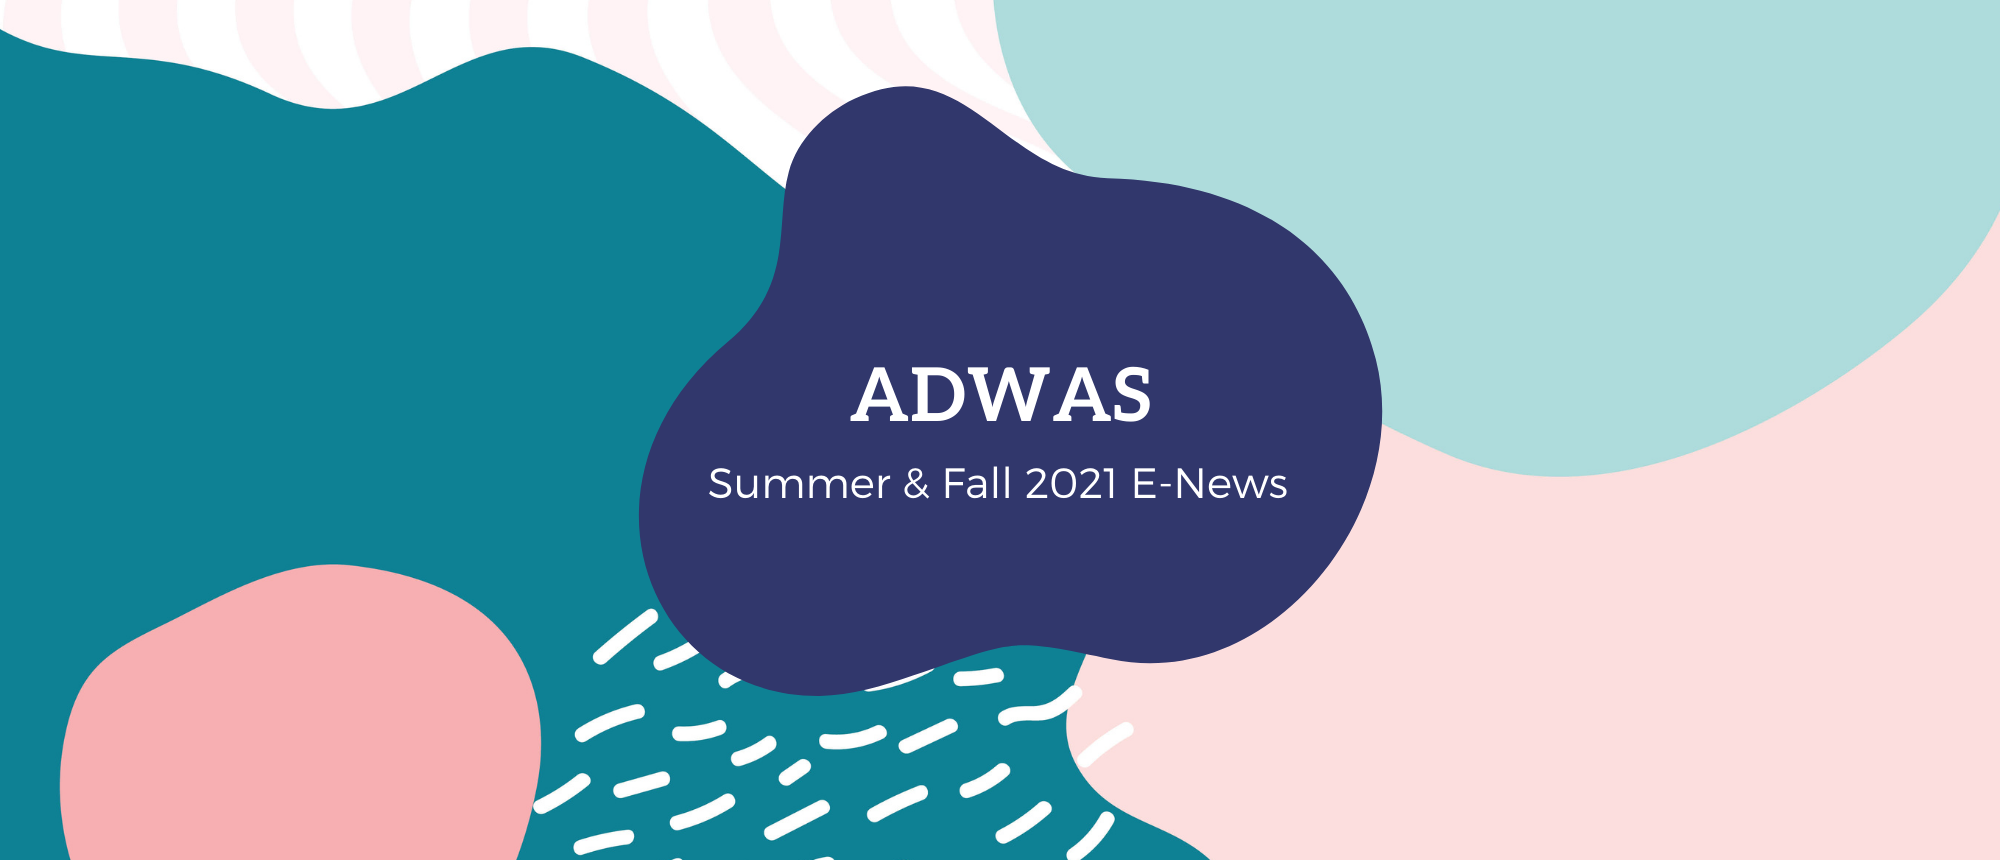 """[ID: Abstract and wavy patterns in light pink, white, light blue, medium blue, and medium pink. In the center there is a dark blue blob with the title """"ADWAS / Summer & Fall 2021 E-News""""]"""